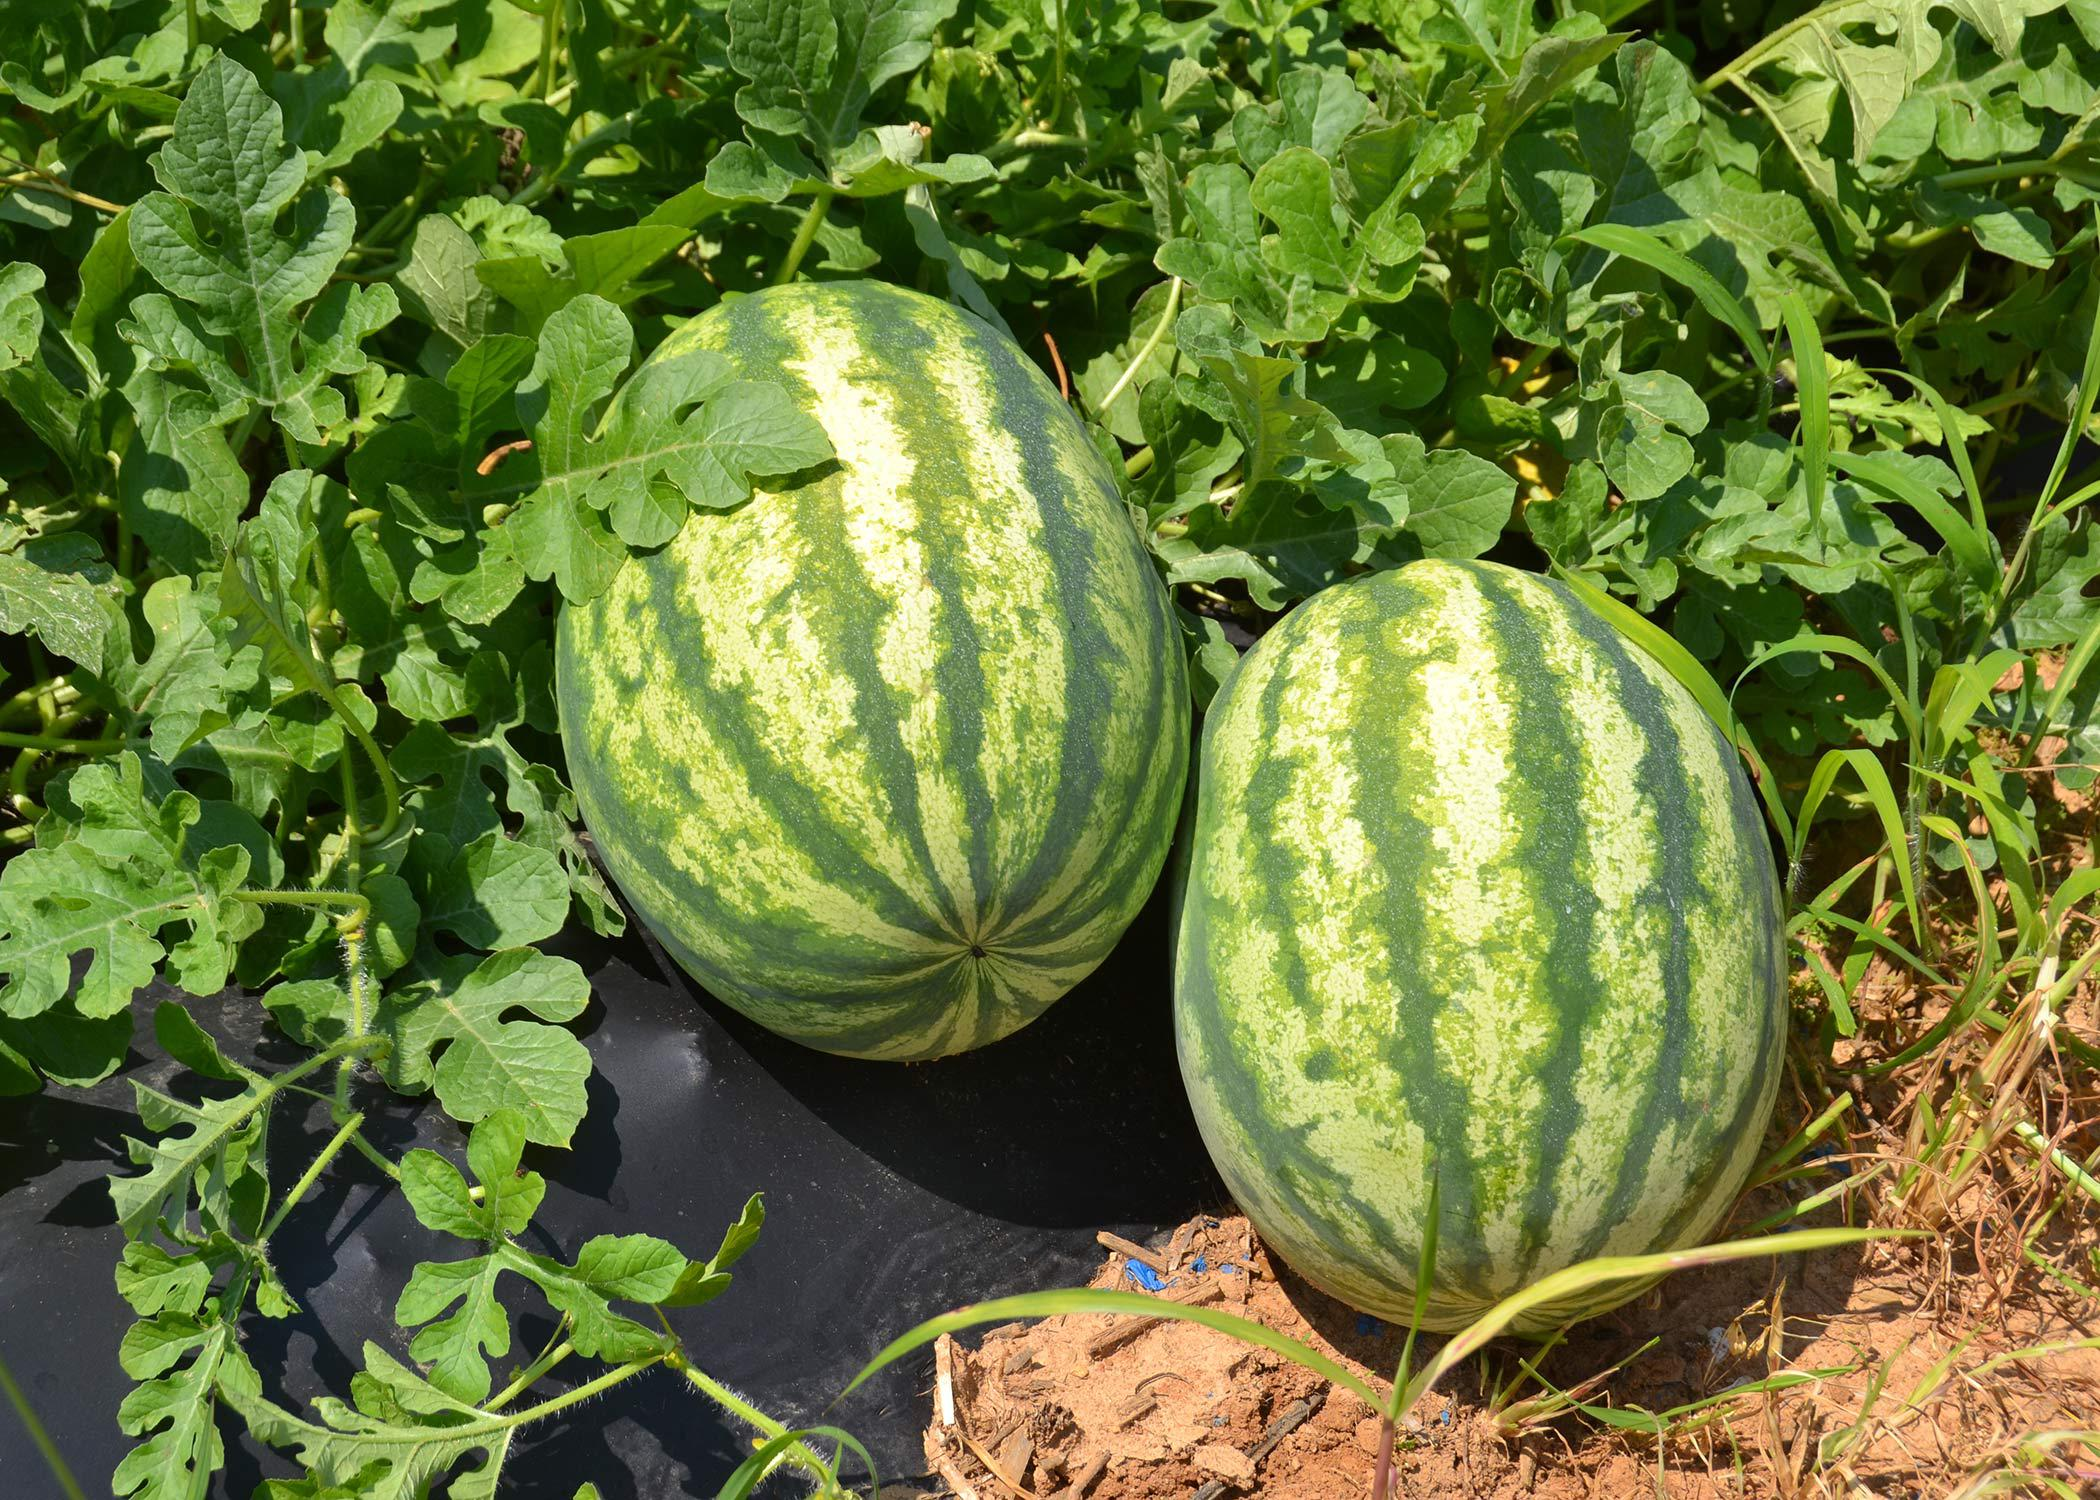 Two watermelons on the vine.